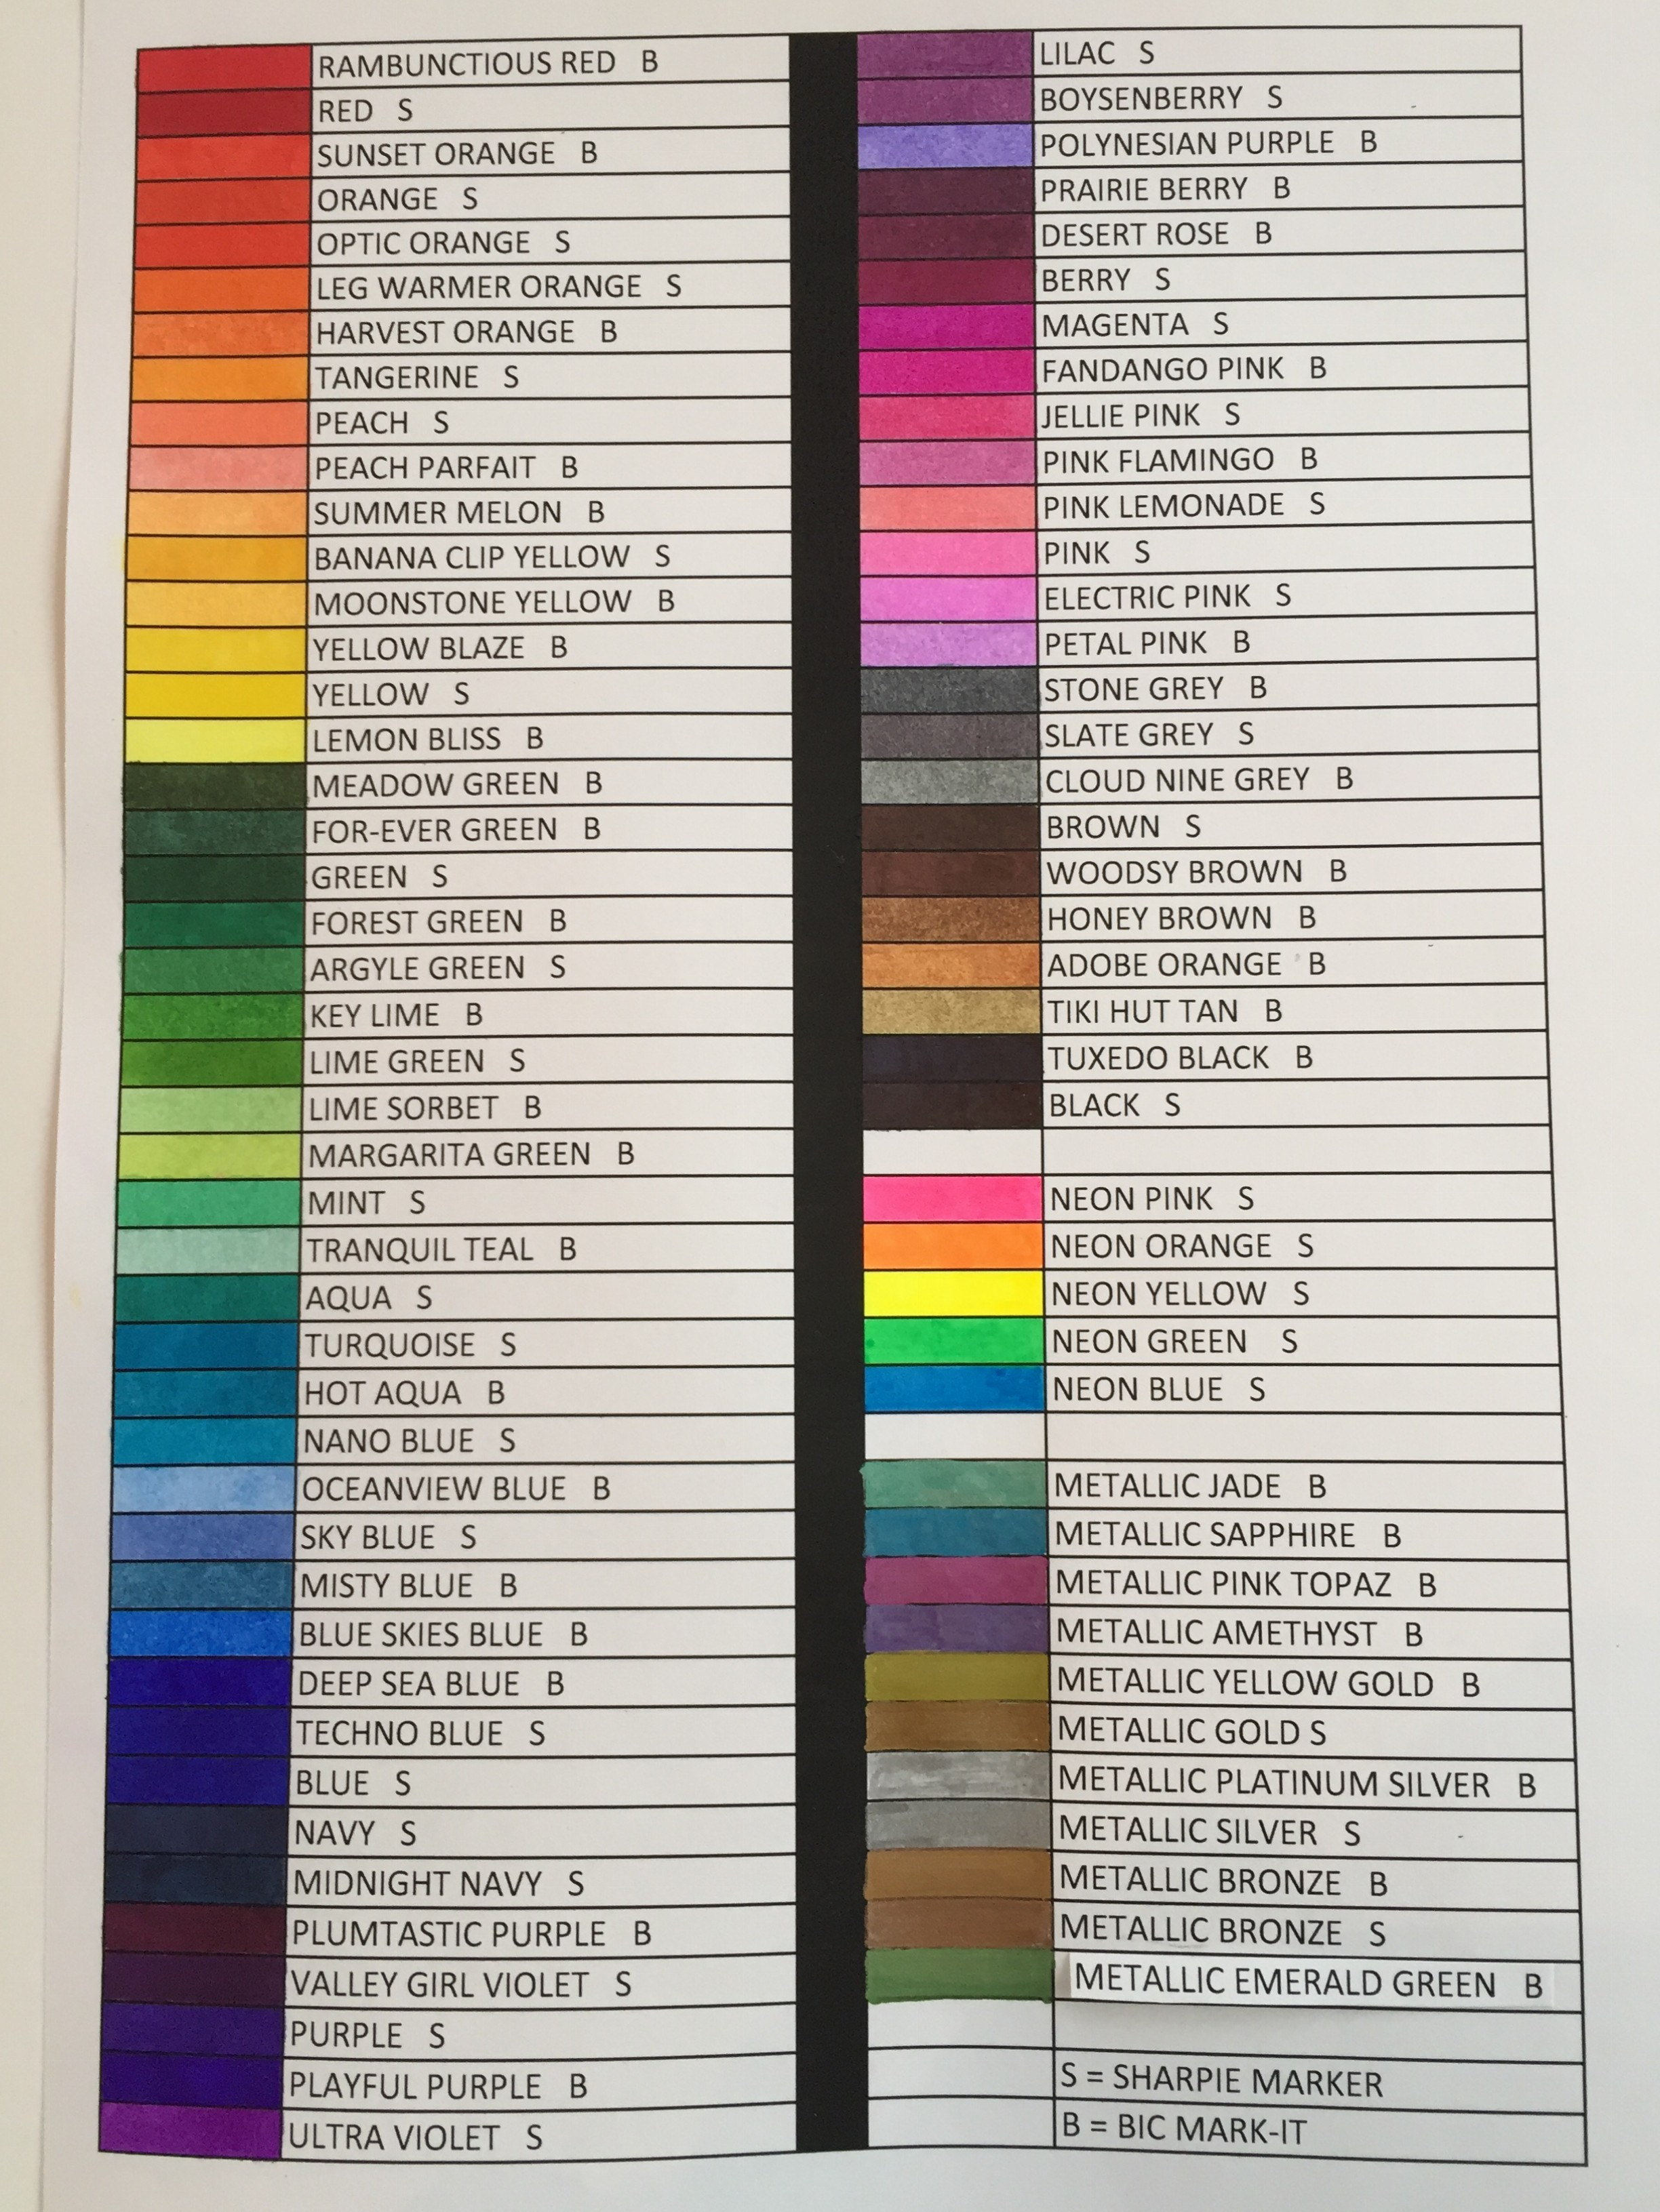 Color Chart For Sharpie And Bic Mark It Markers